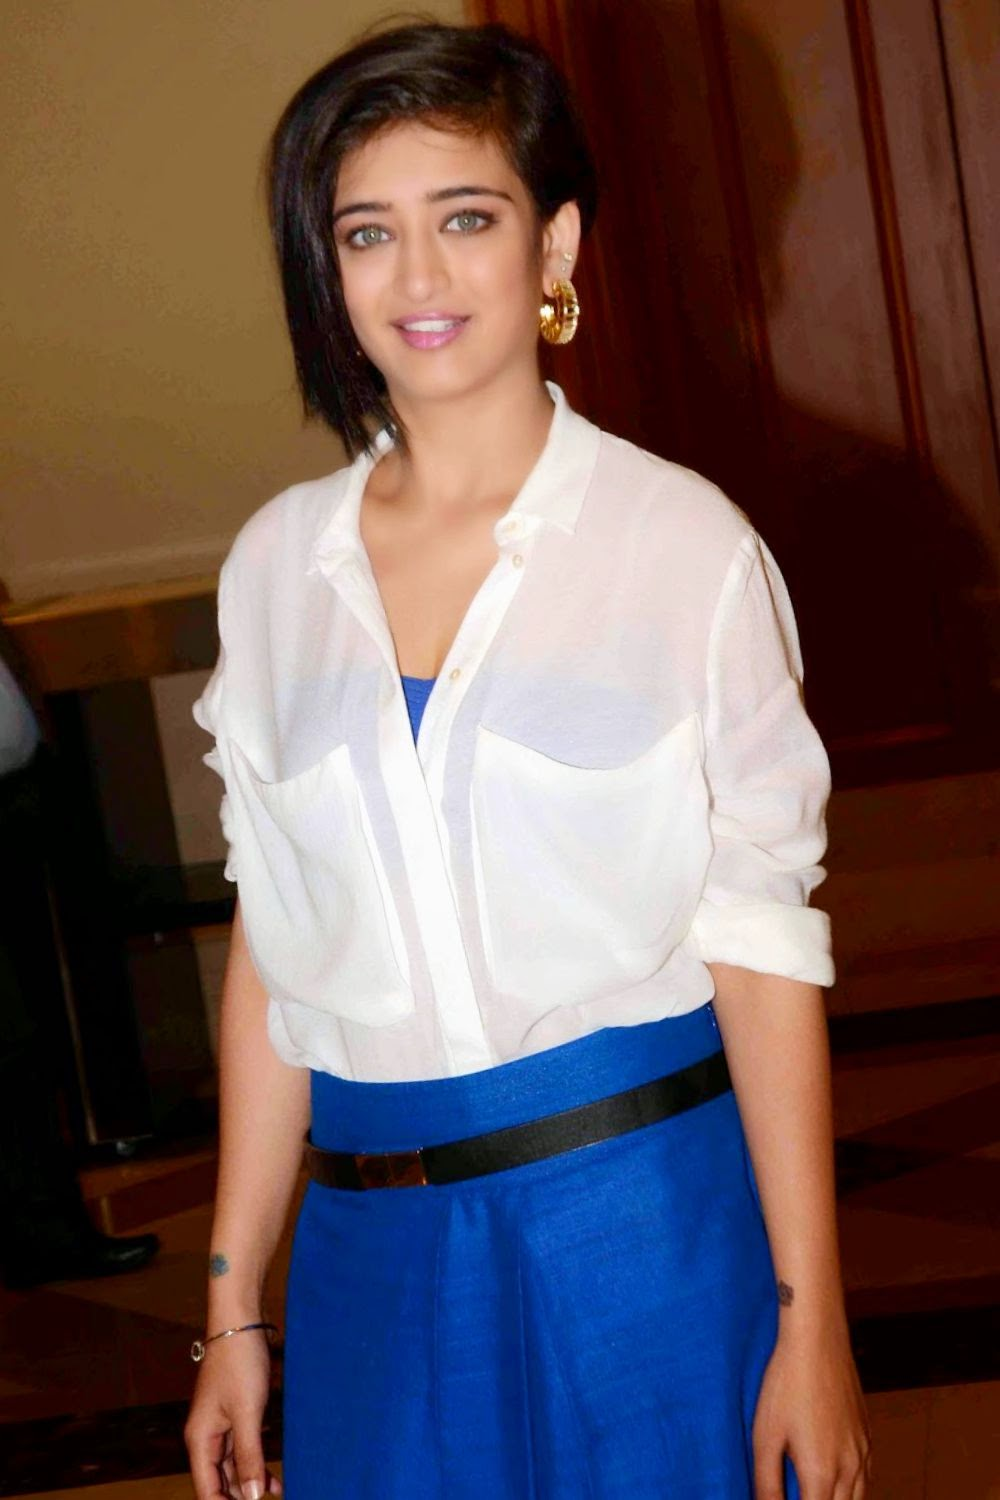 Dirty post: Akshara Hassan Blue Ghaghra and White Shirt, HOT @ 23